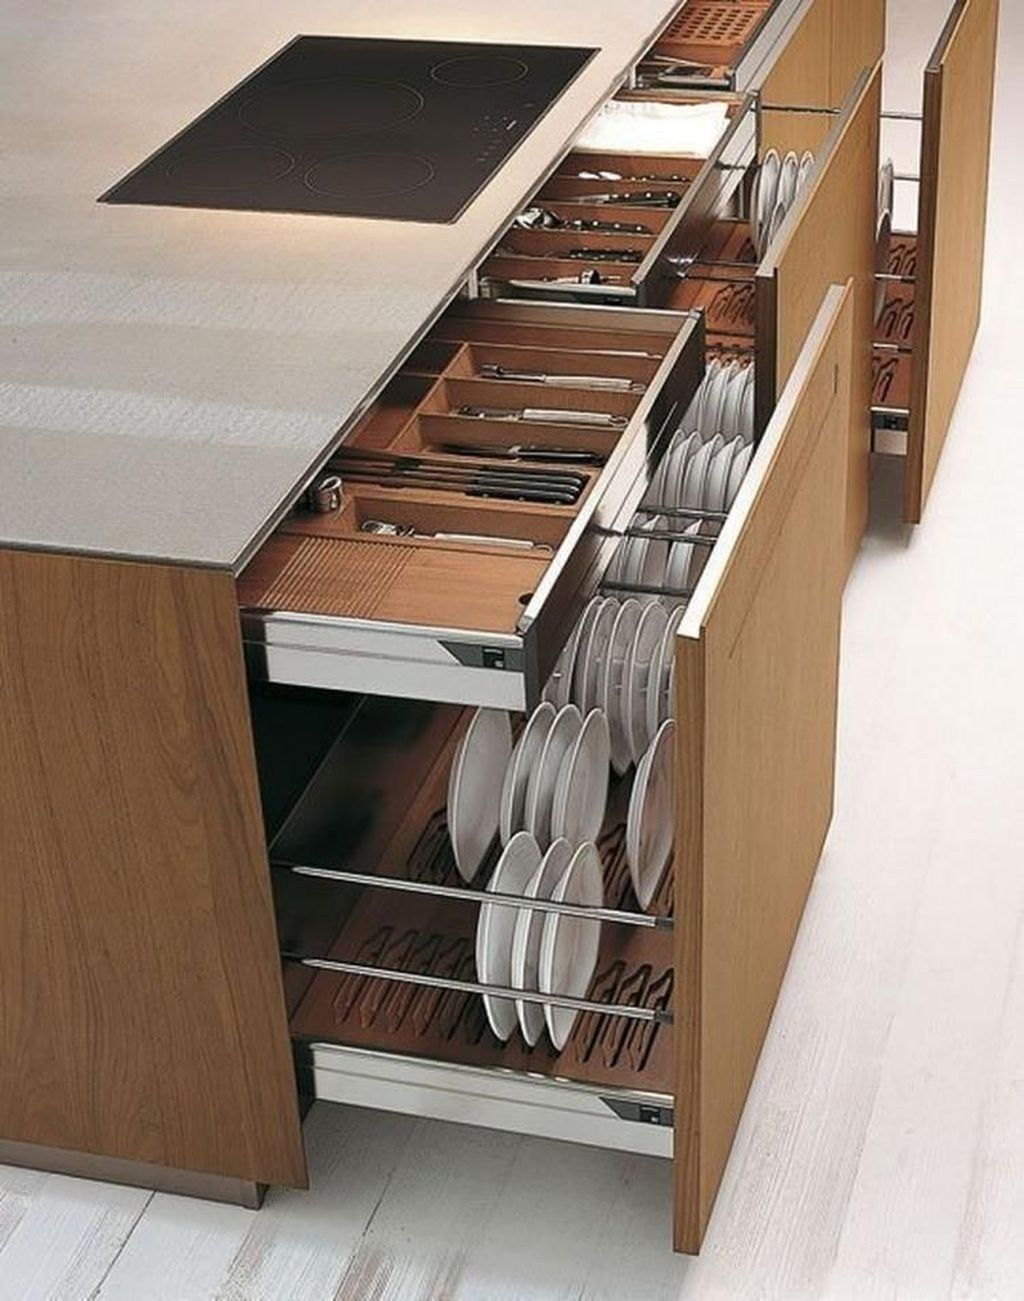 31 the best tool organization design ideas to save your